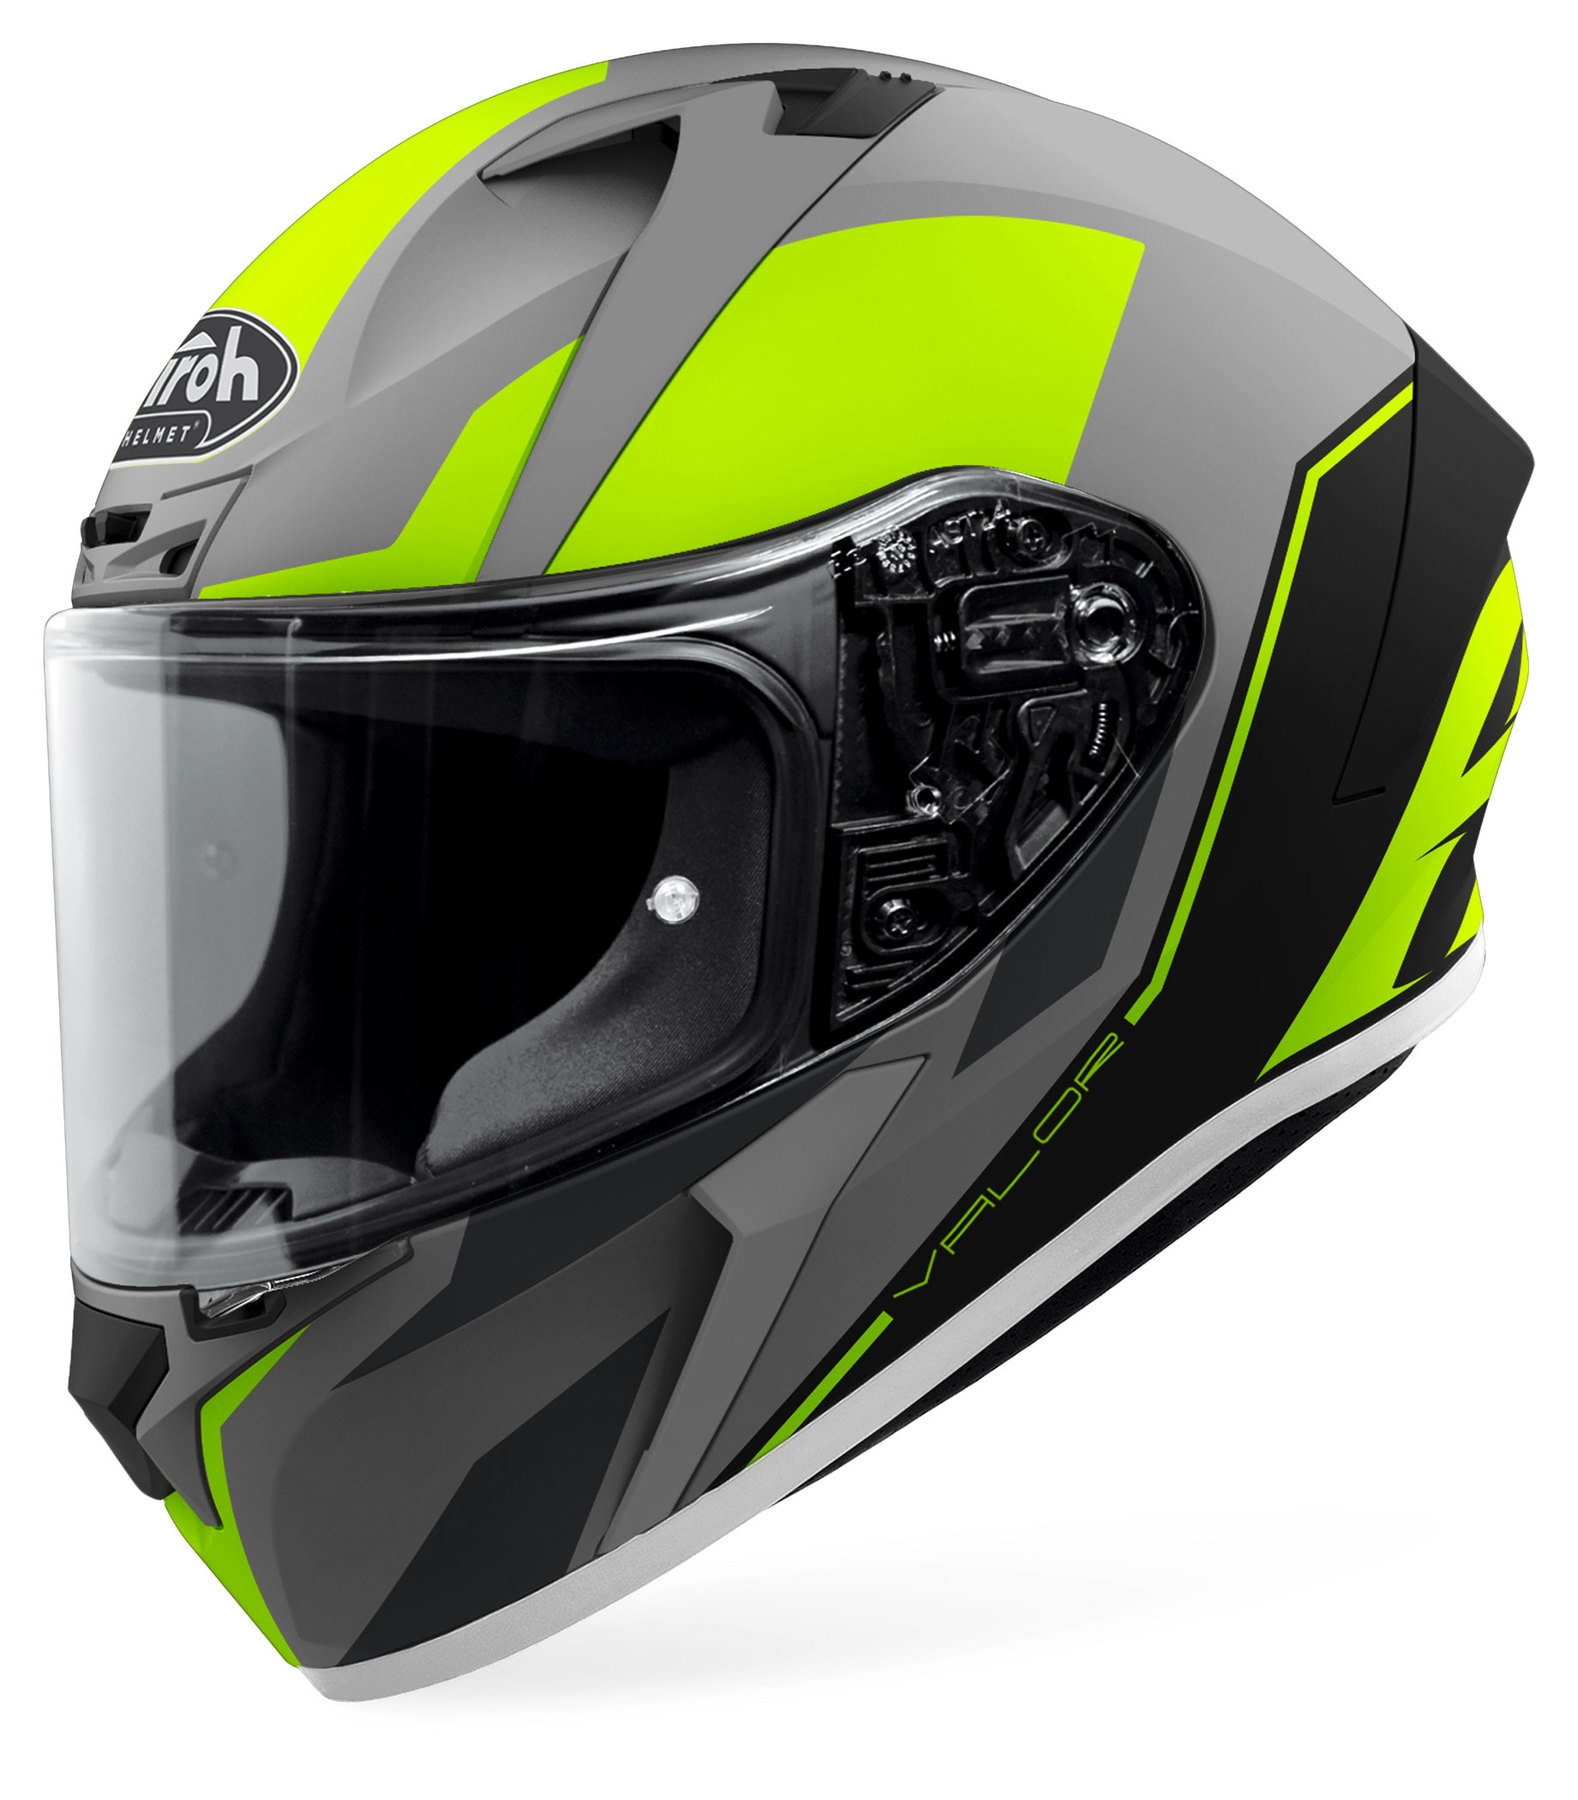 Casco integrale Airoh VALOR WINGS Yellow Matt 1